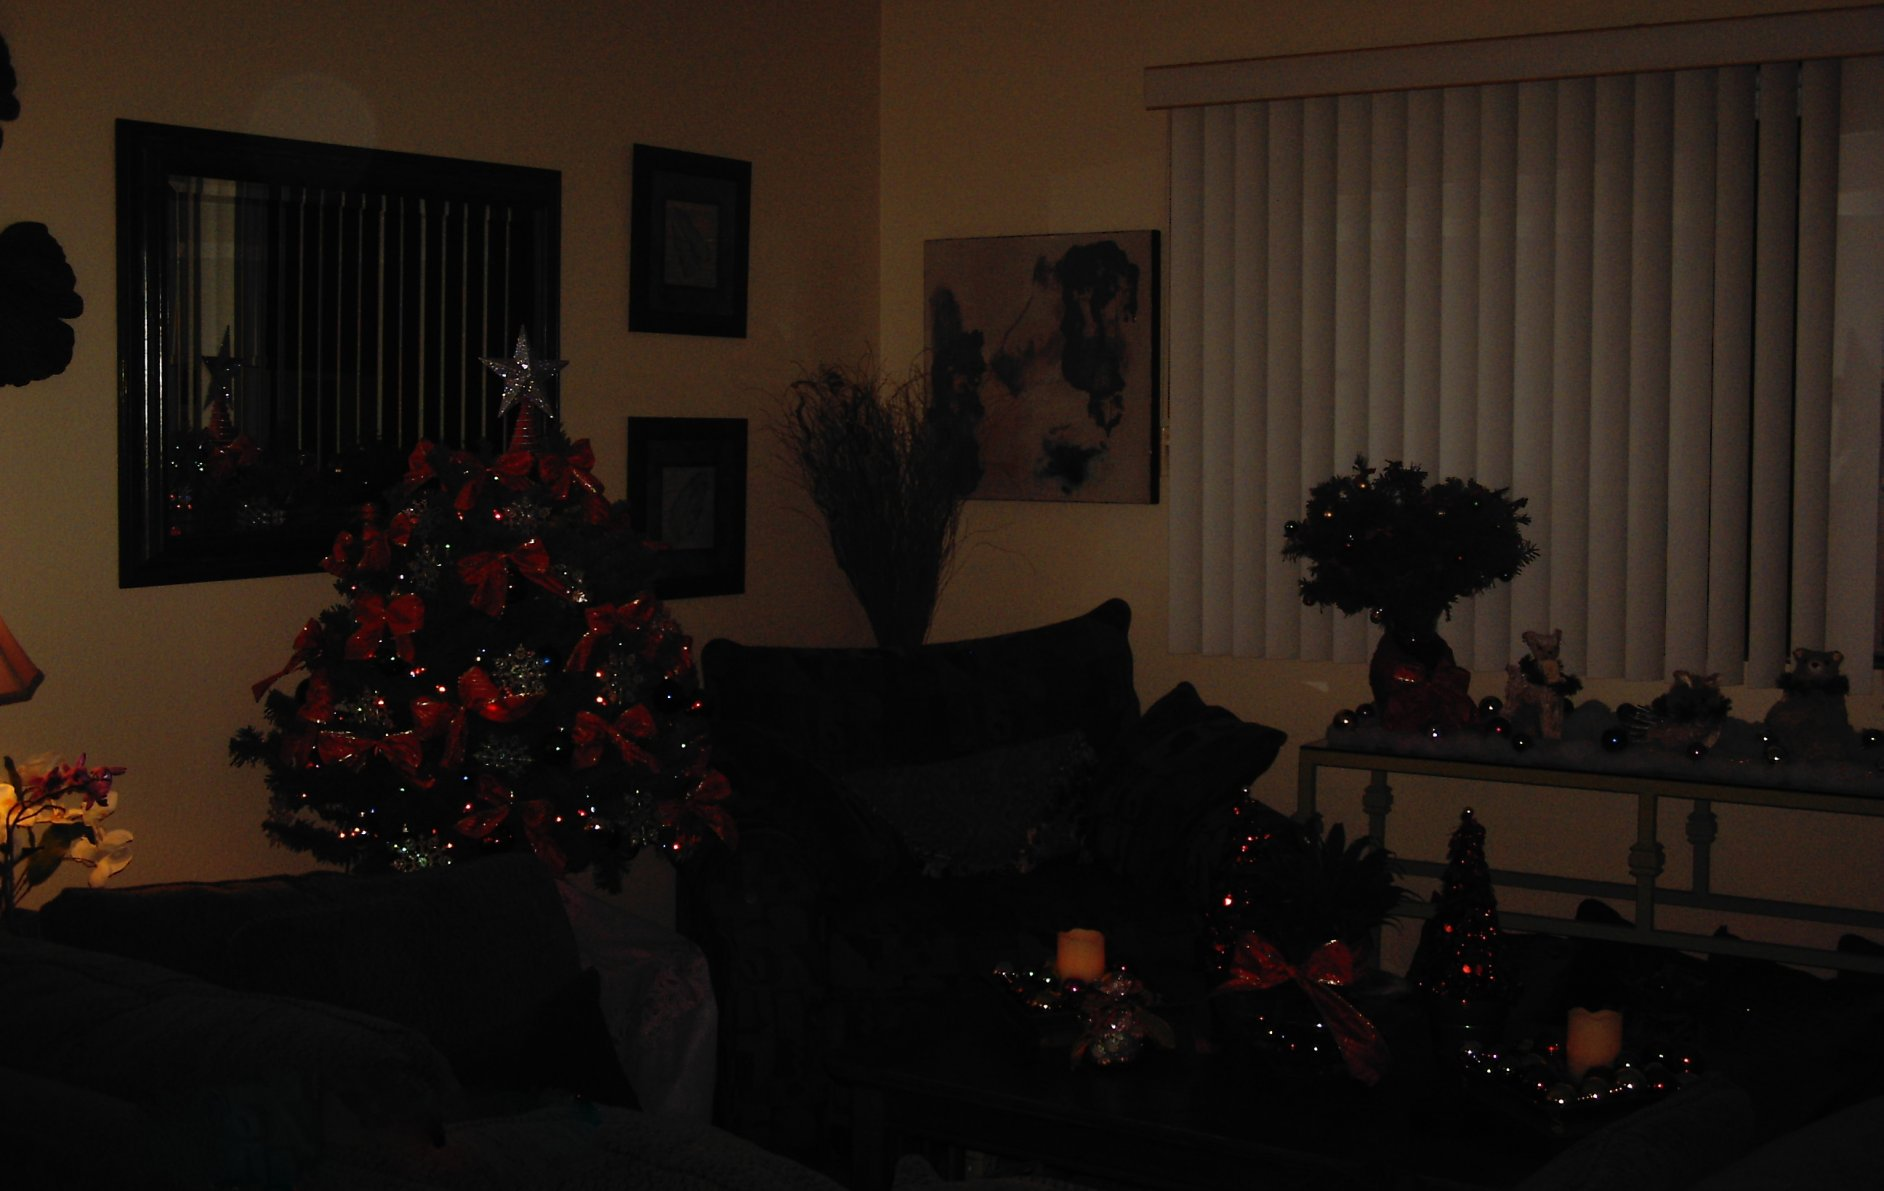 How Much Do Your Dogs Love Christmas Trees?-dcfc0392.jpg